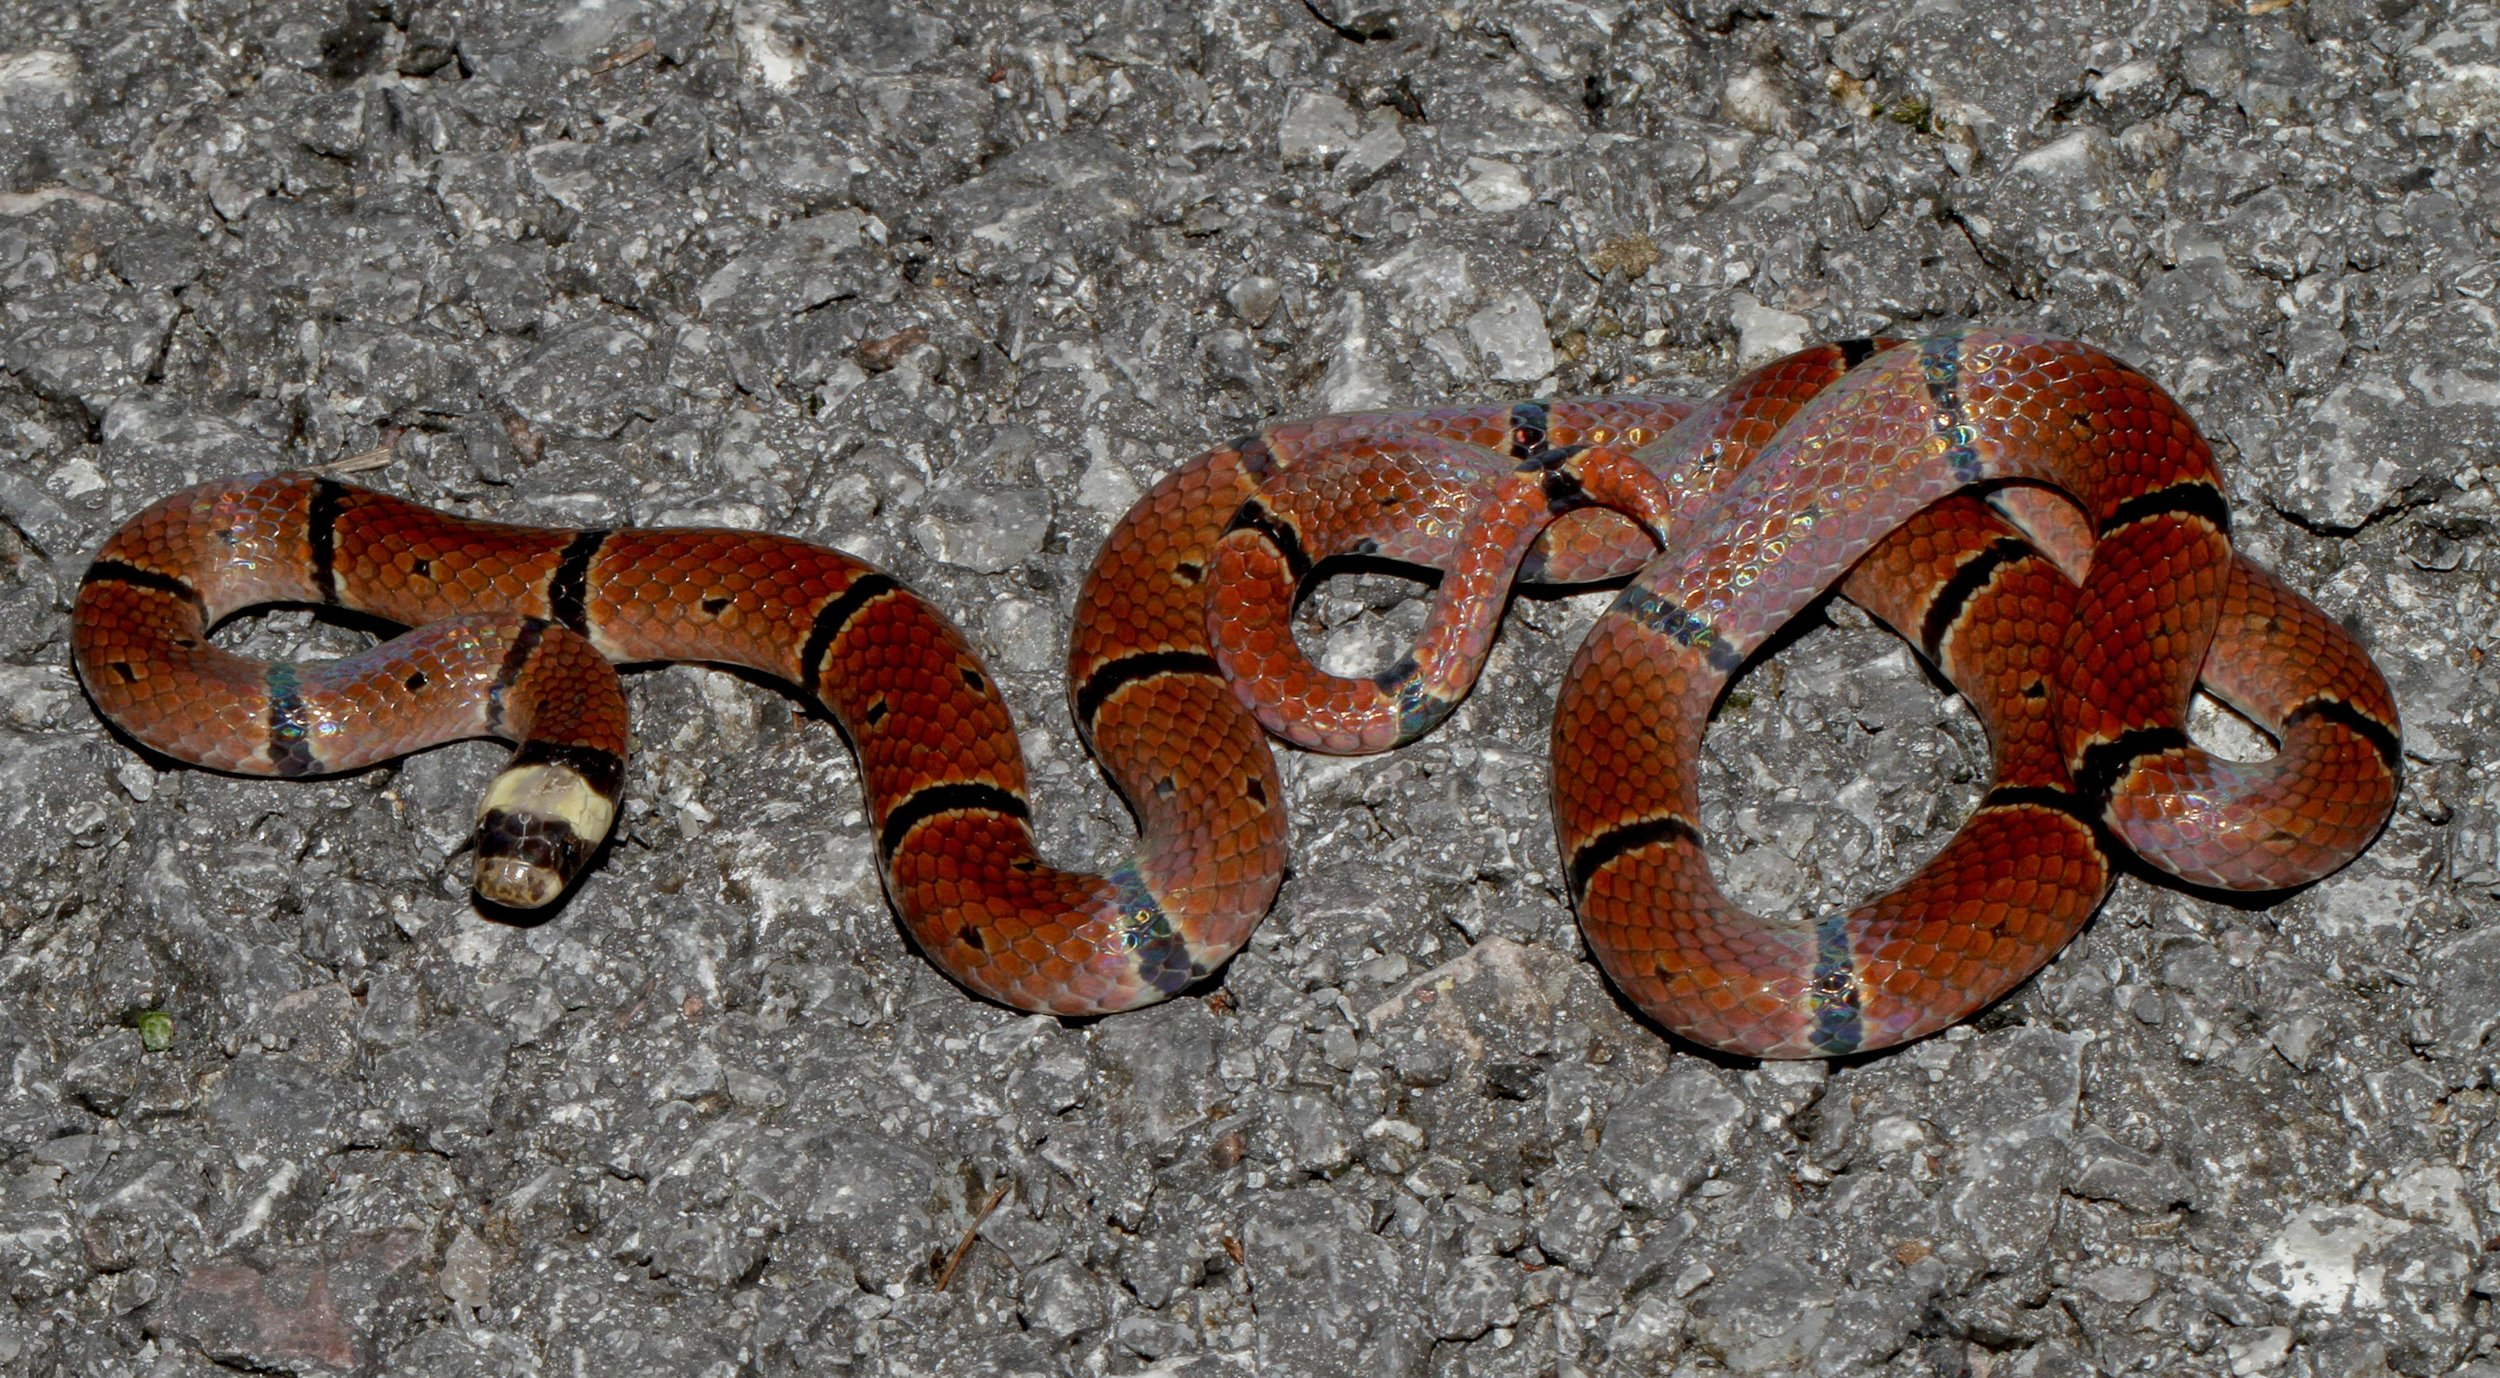 MCCLELLAND'S CORAL SNAKE  - Photo credit: Dan Rosenberg